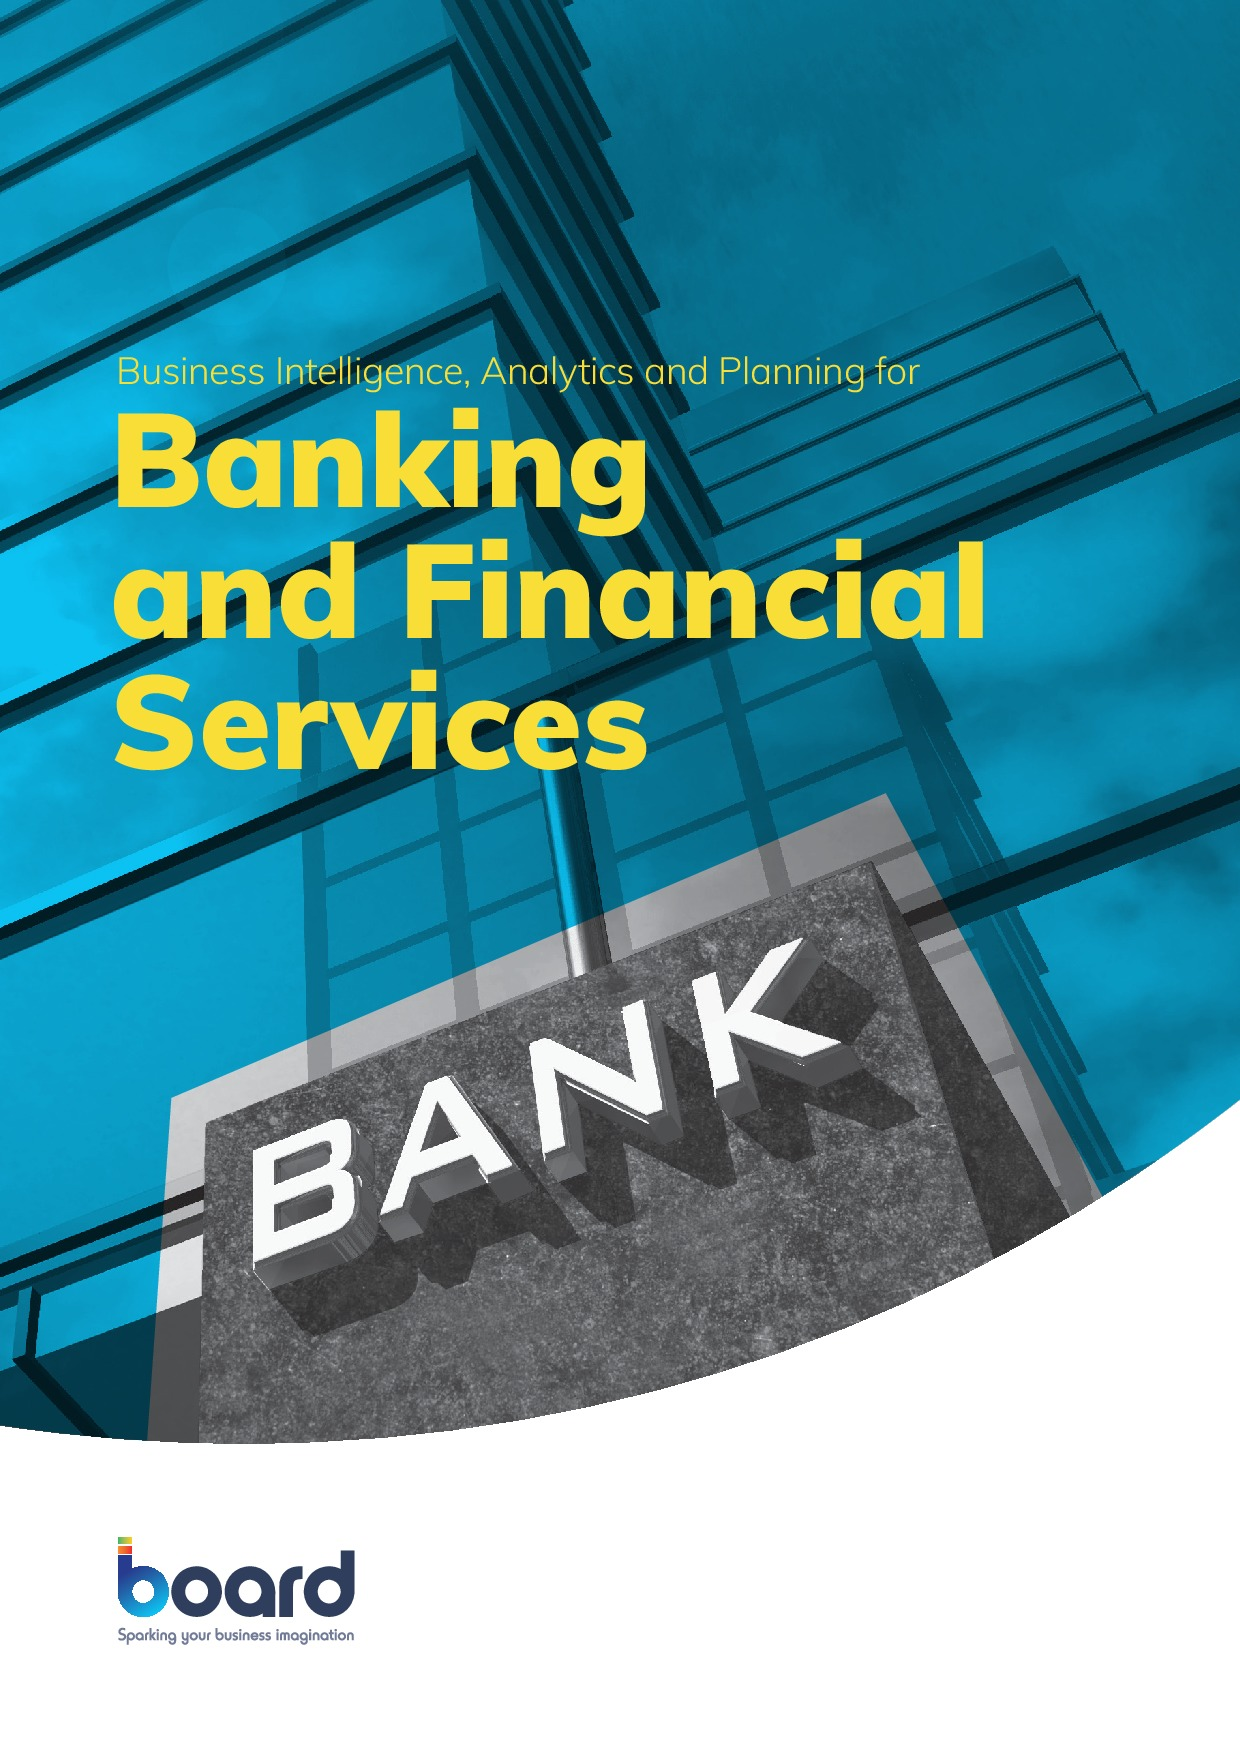 Business Intelligence, Analytics and Planning for Banking and Financial Services | Page 1